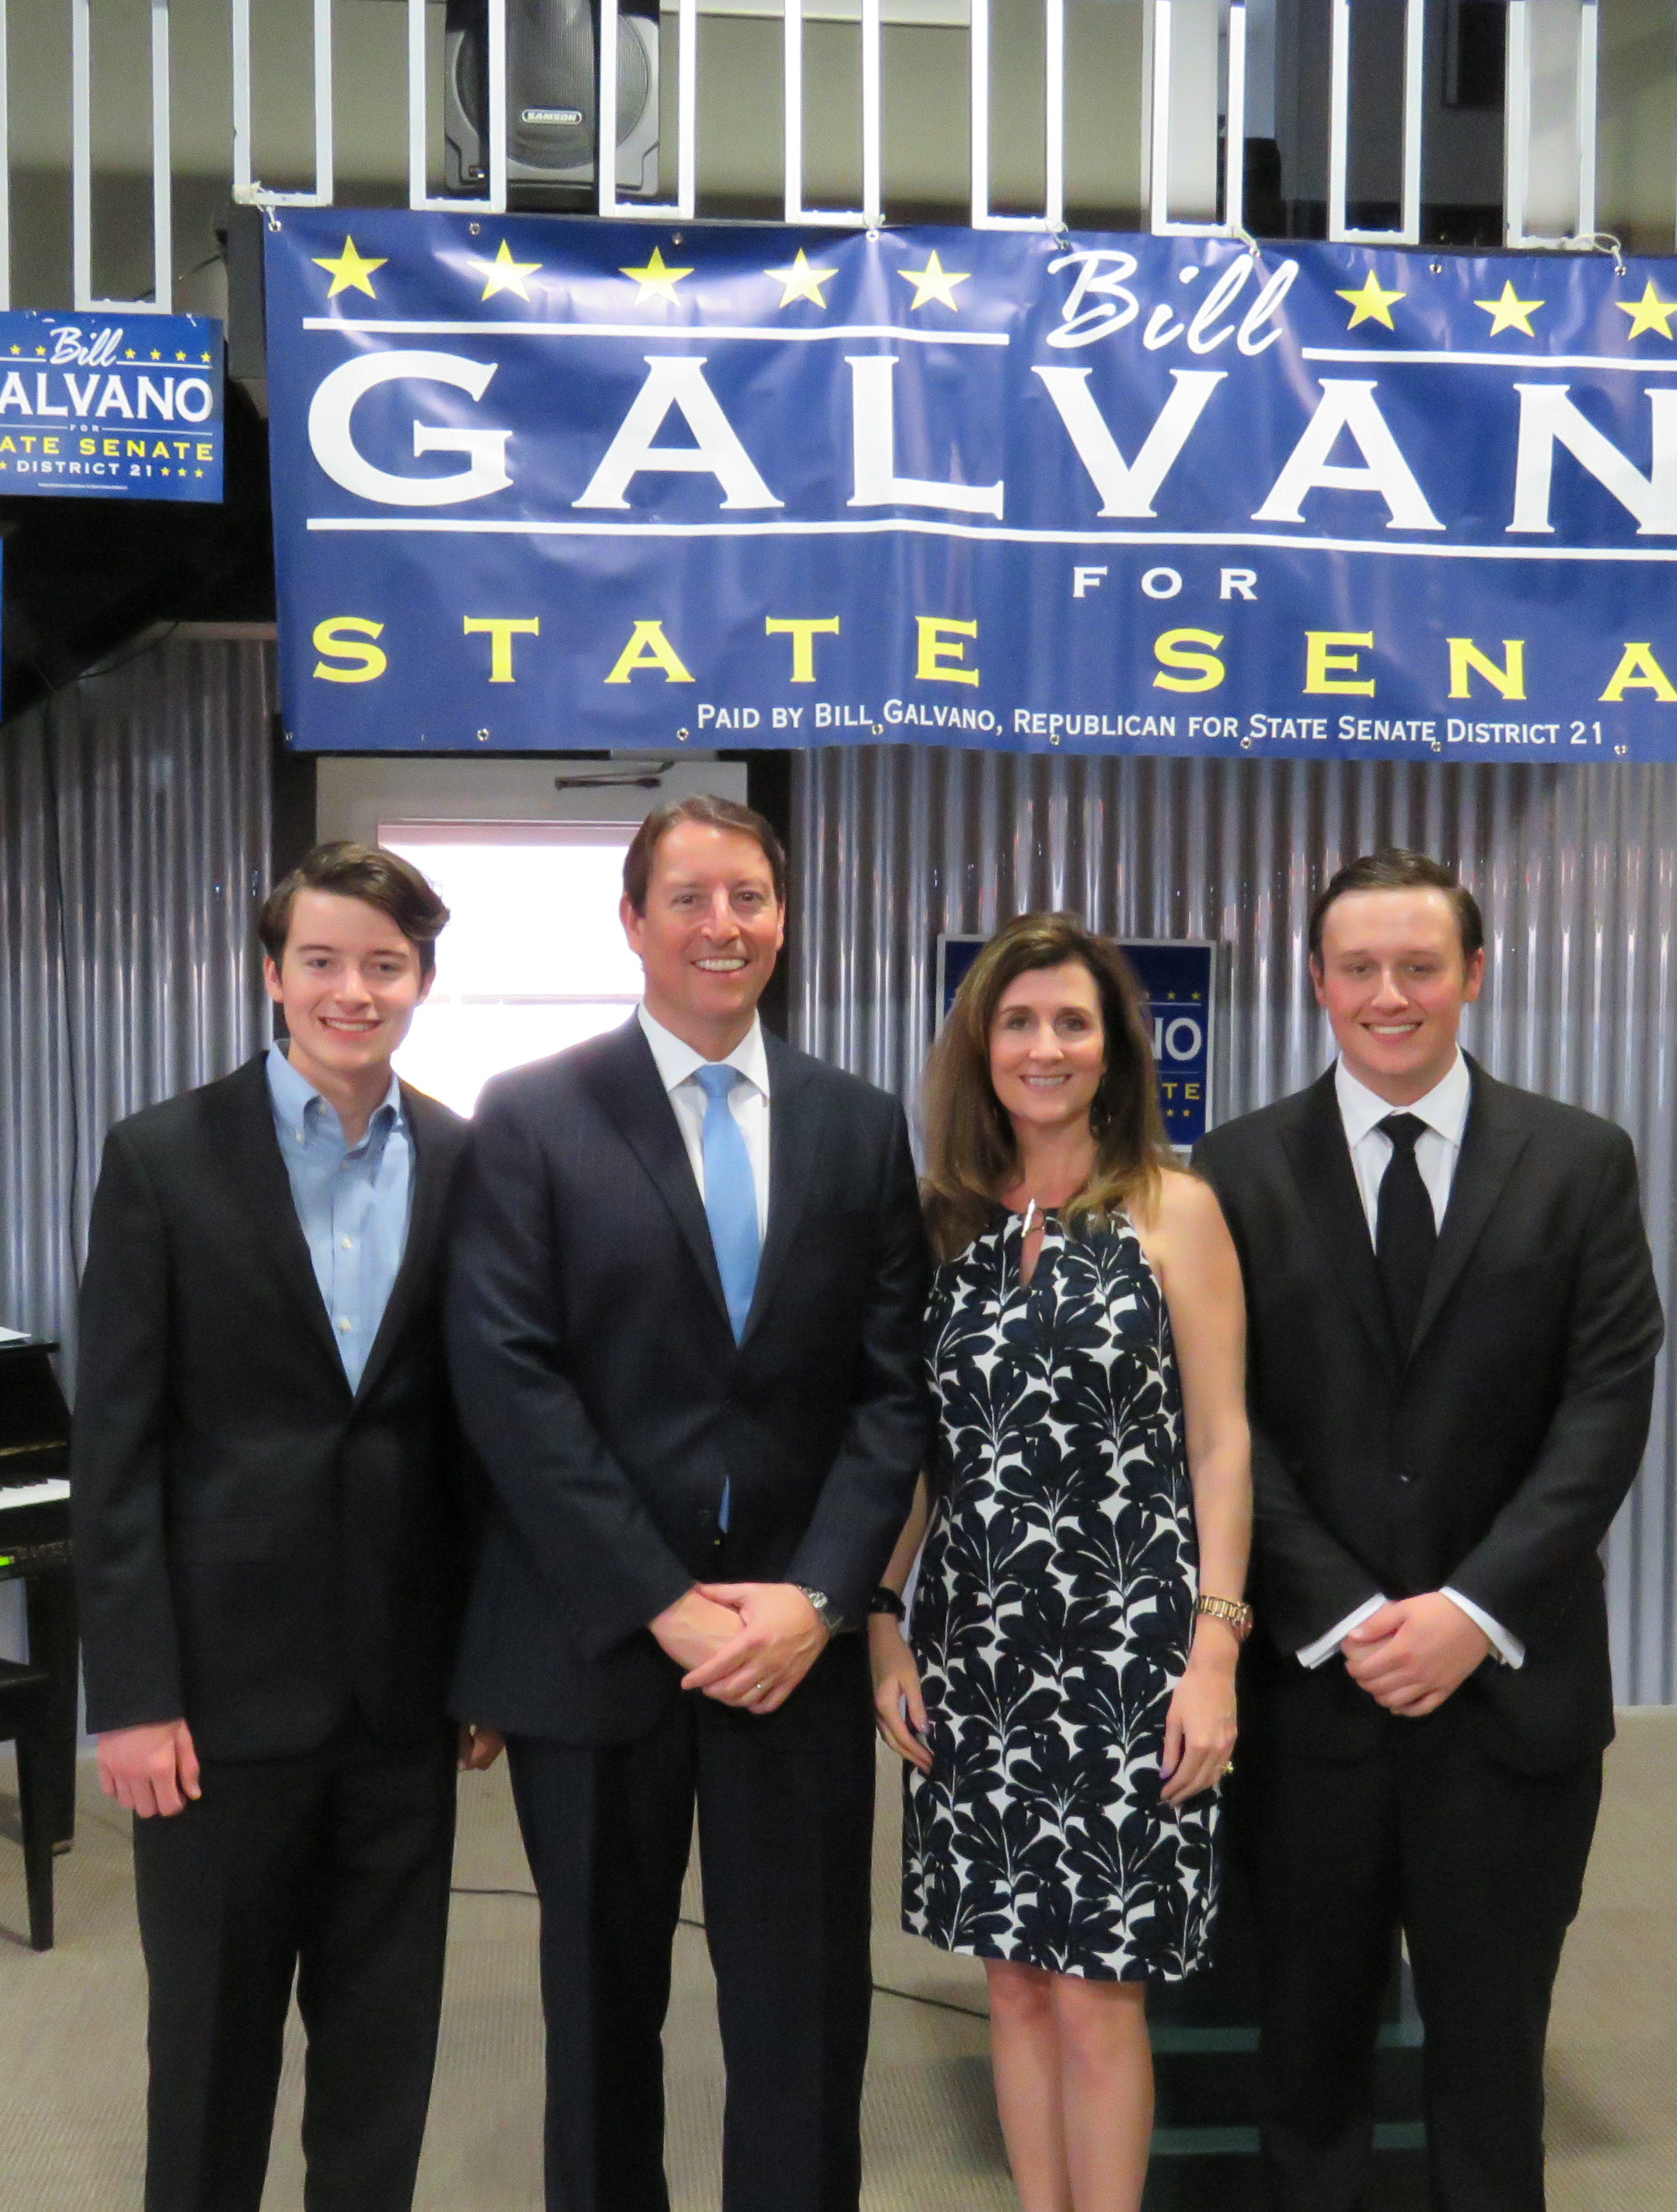 Galvano and Wife